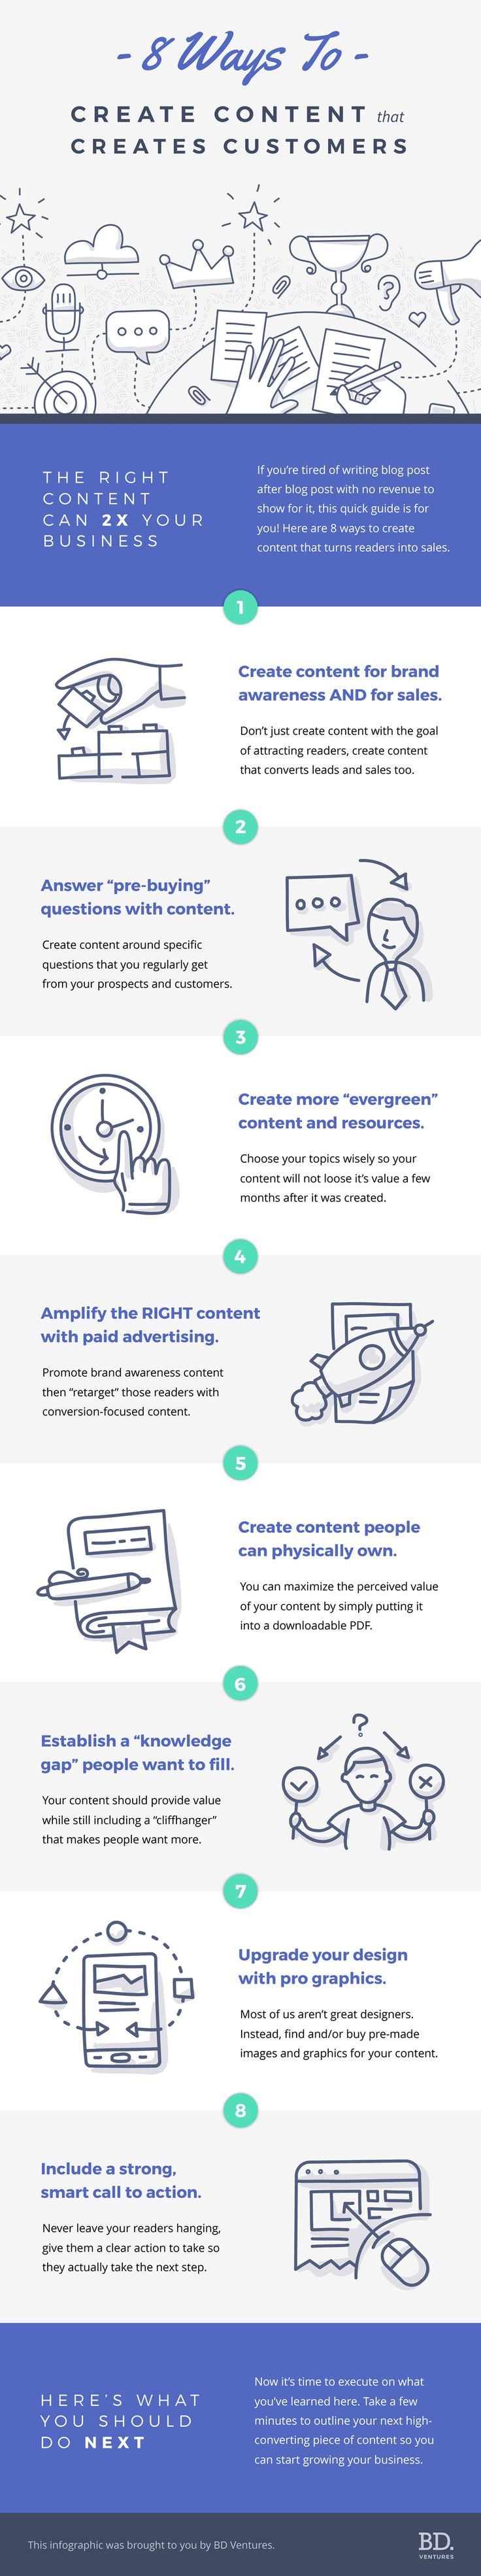 8 Ways To Create Content That Creates Customers - #Infographic